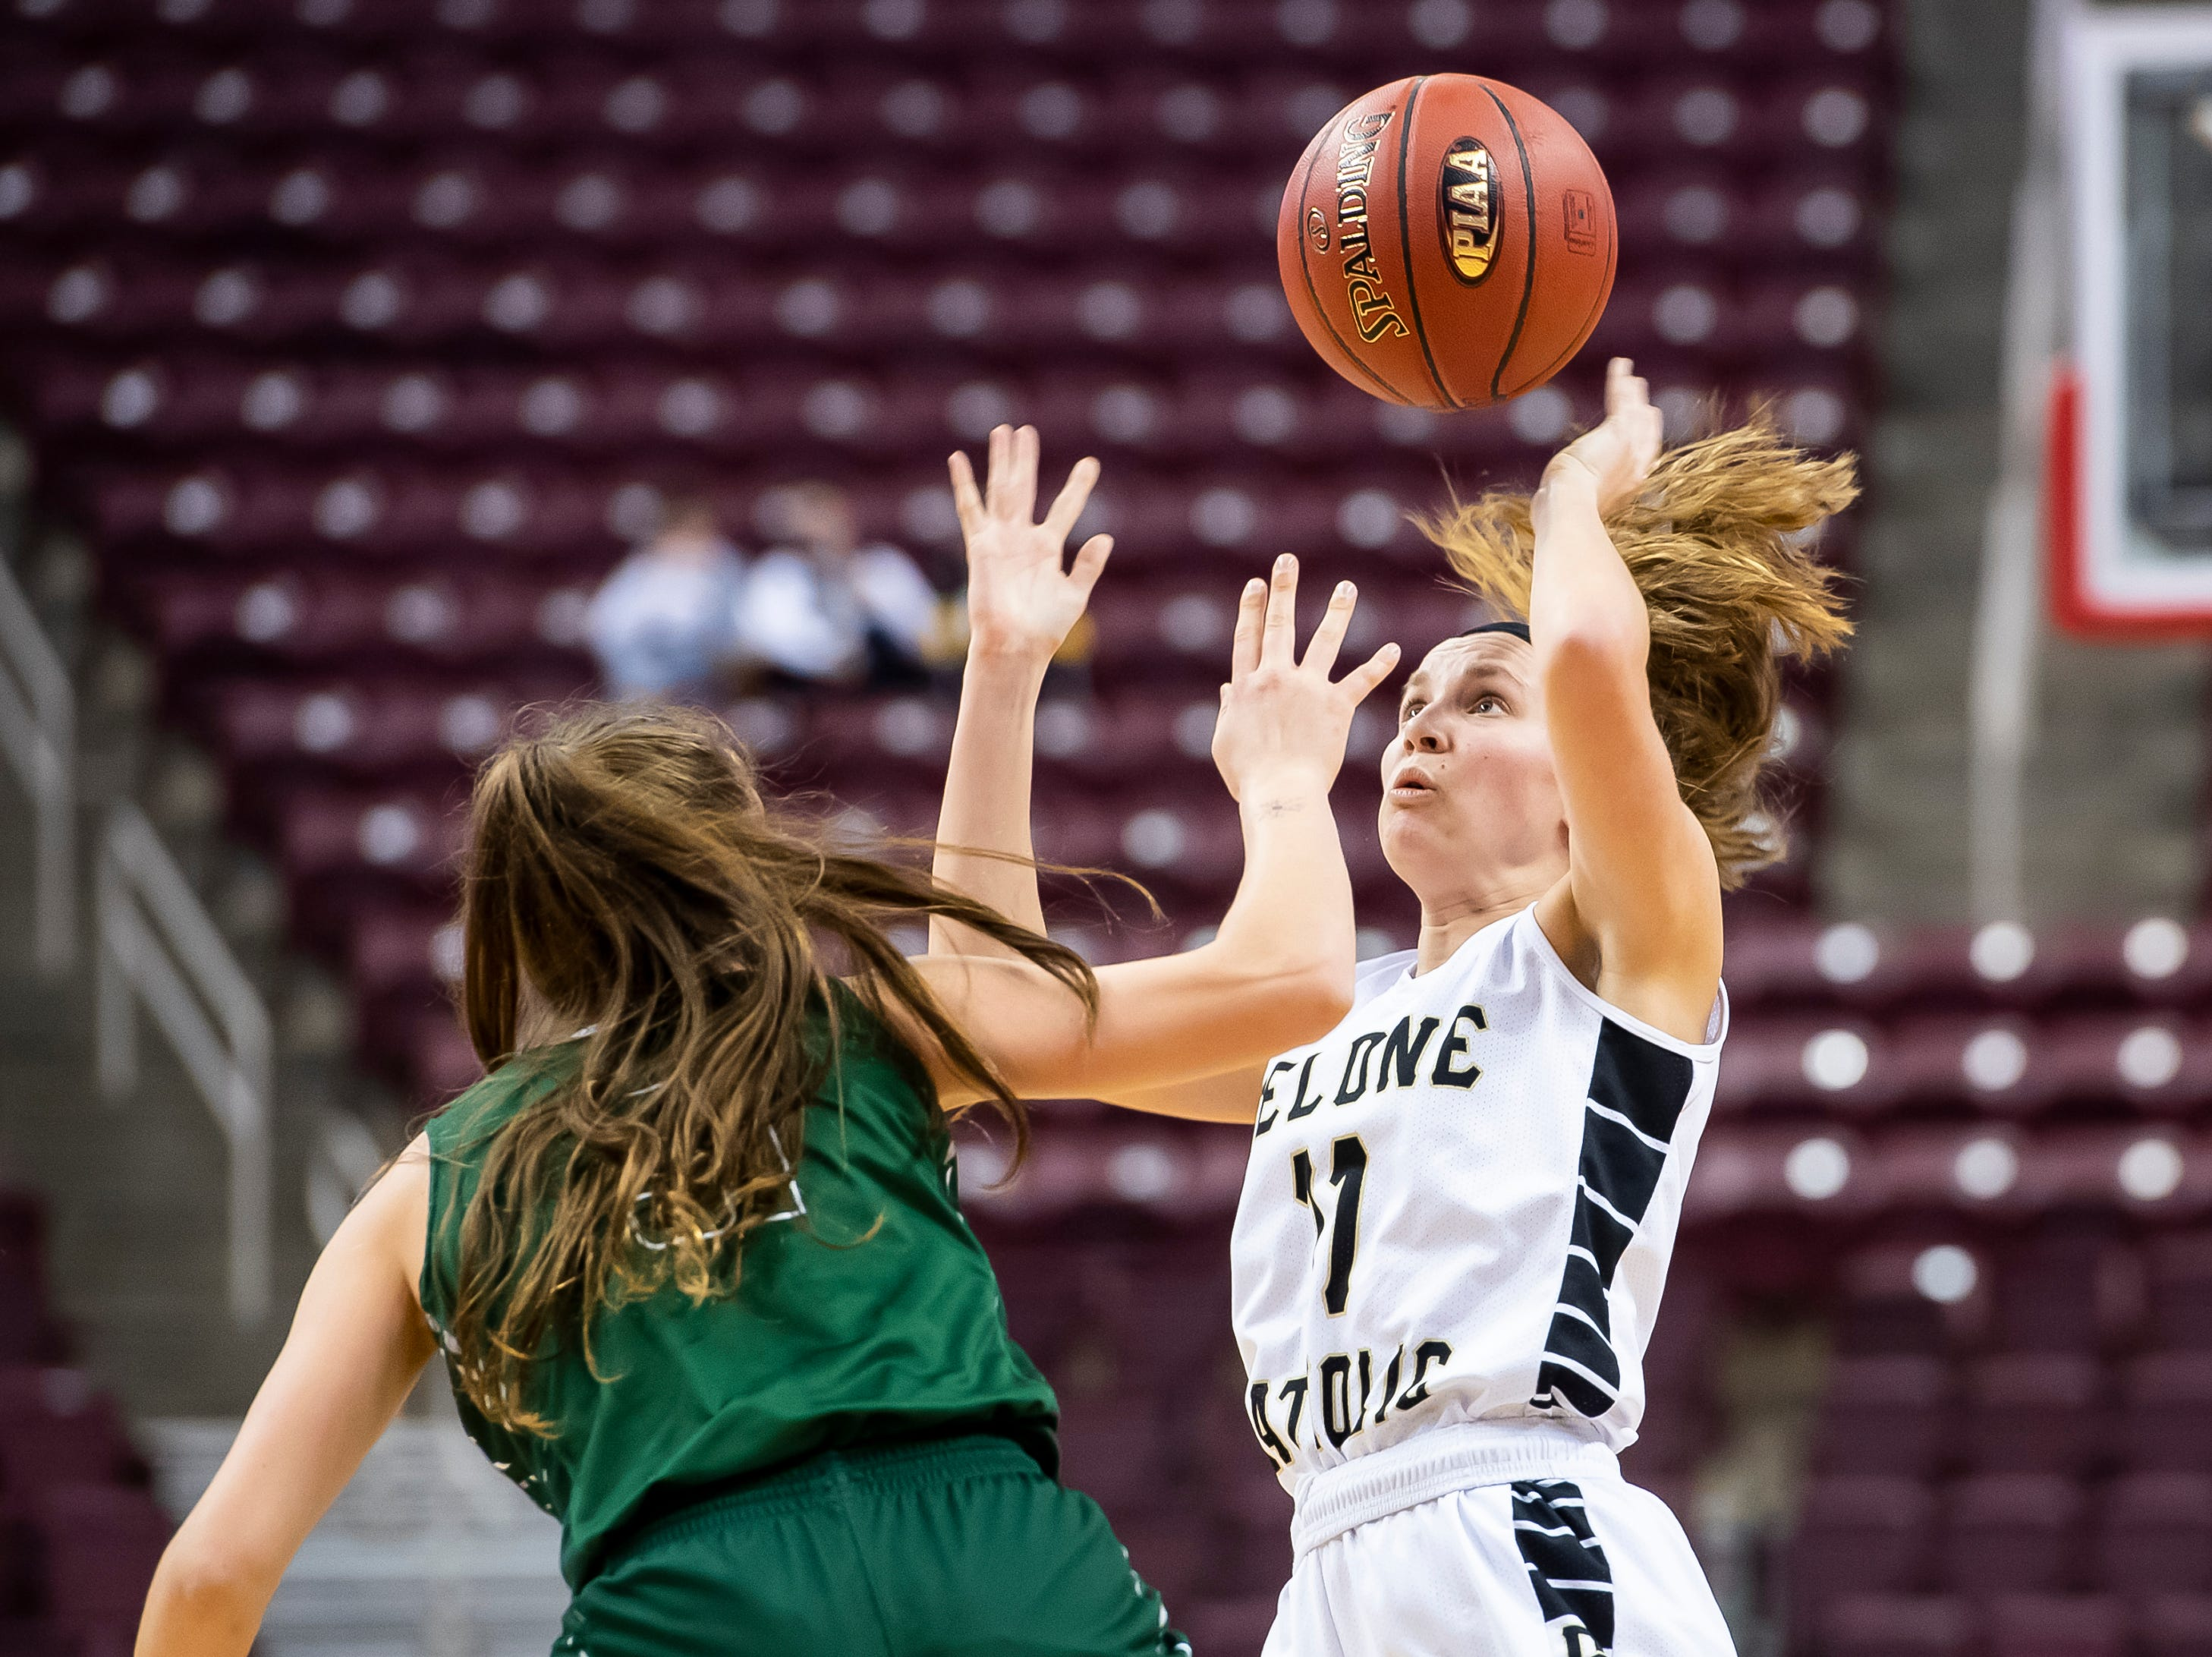 Delone Catholic's Riley Vingsen maintains possession as Trinity's Braylee Fetterolf tries to make a steal during the District 3 3A girls championship game at the Giant Center in Hershey Wednesday, Feb. 27, 2019. The Squirettes fell 44-33.